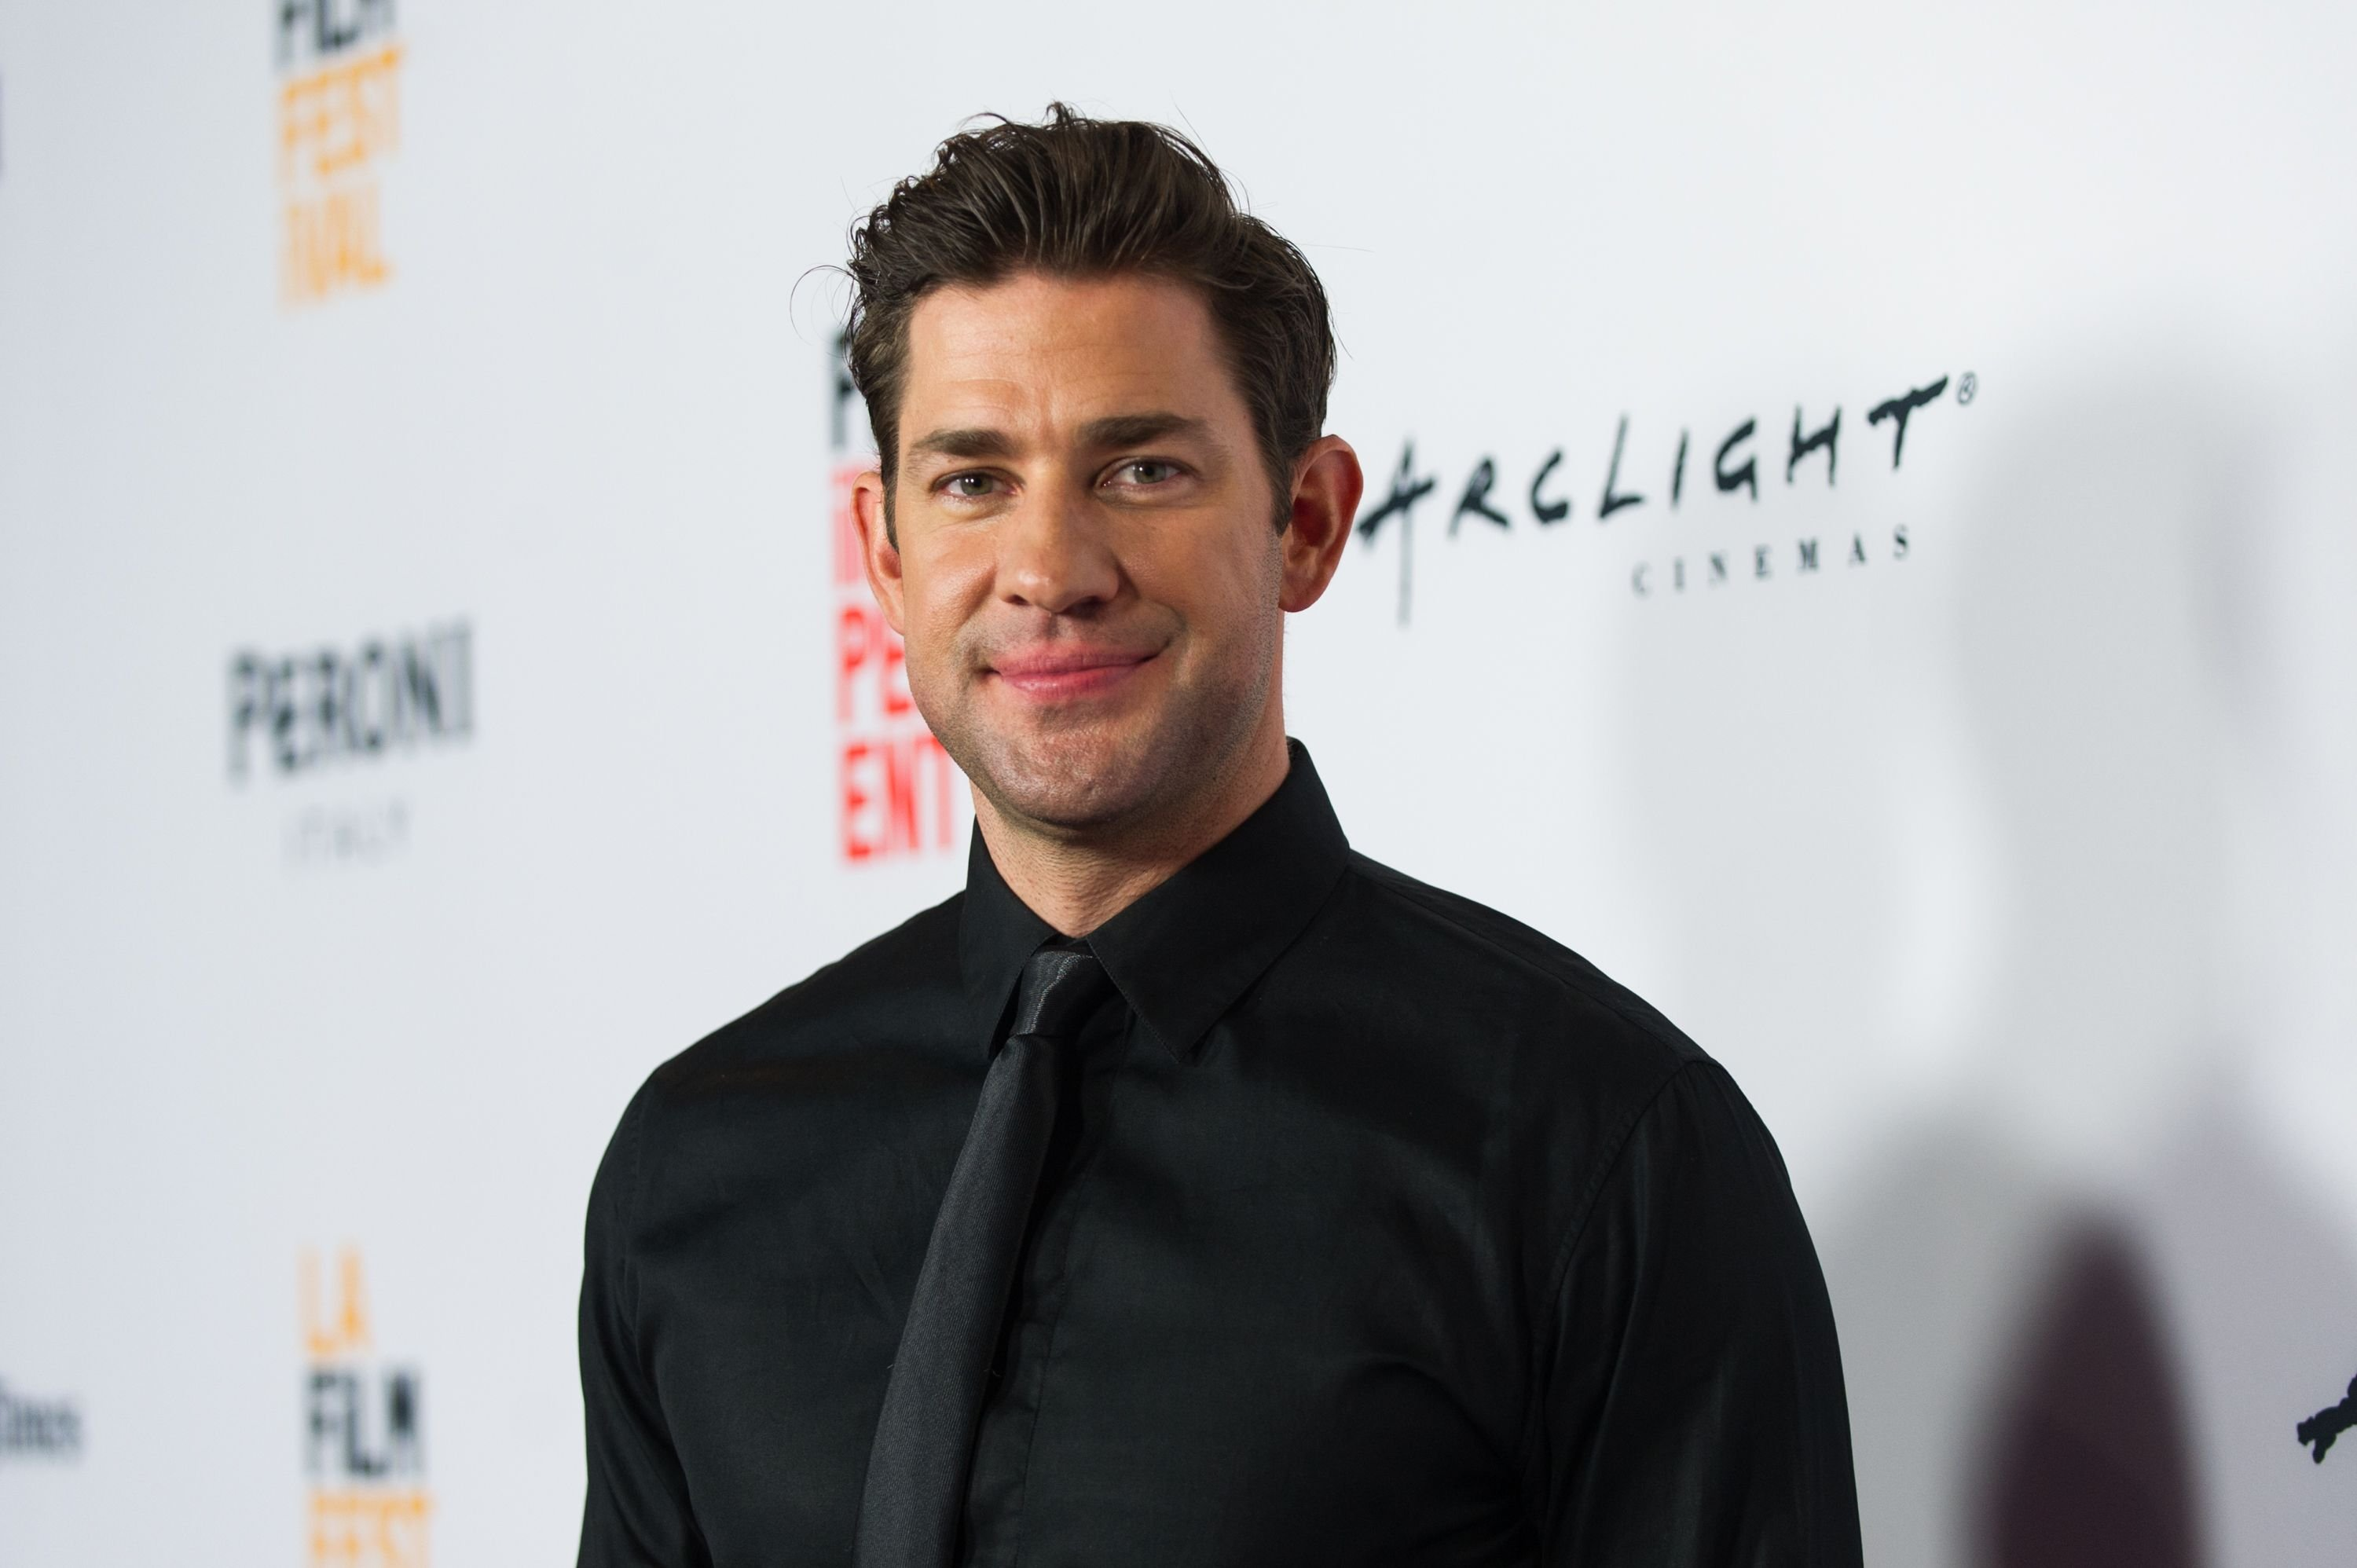 John Krasinski will probably forever be known as Jim / Getty Images